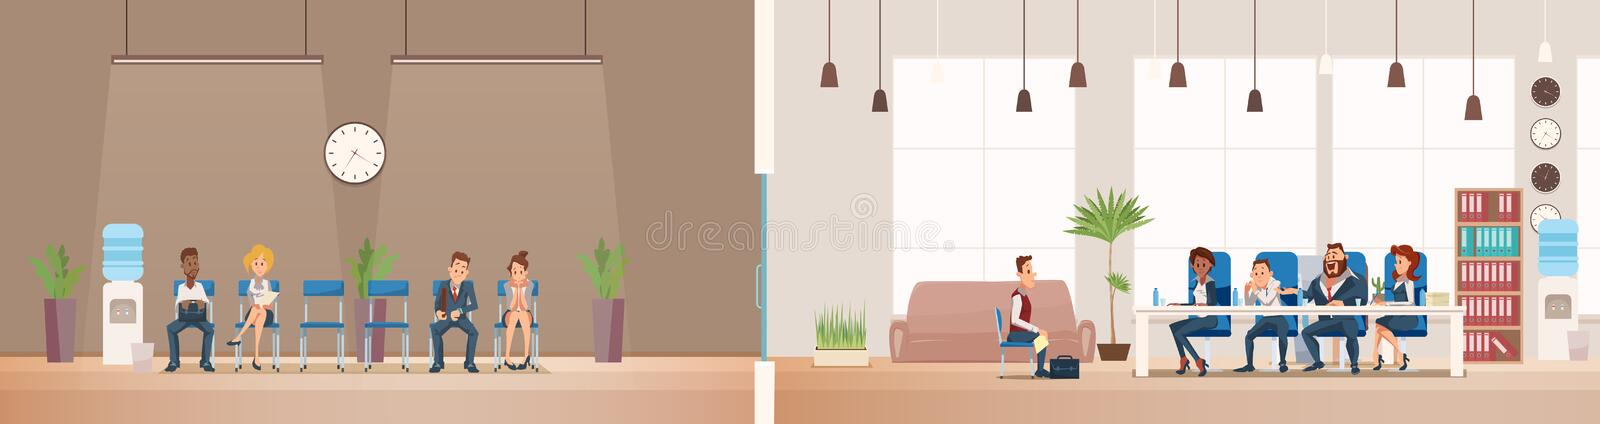 Job Interview and Recruiting. Vector Illustration. Job Interview and Recruiting. Human Resources Interview Recruitment Job Concept. People sitting in Office stock illustration